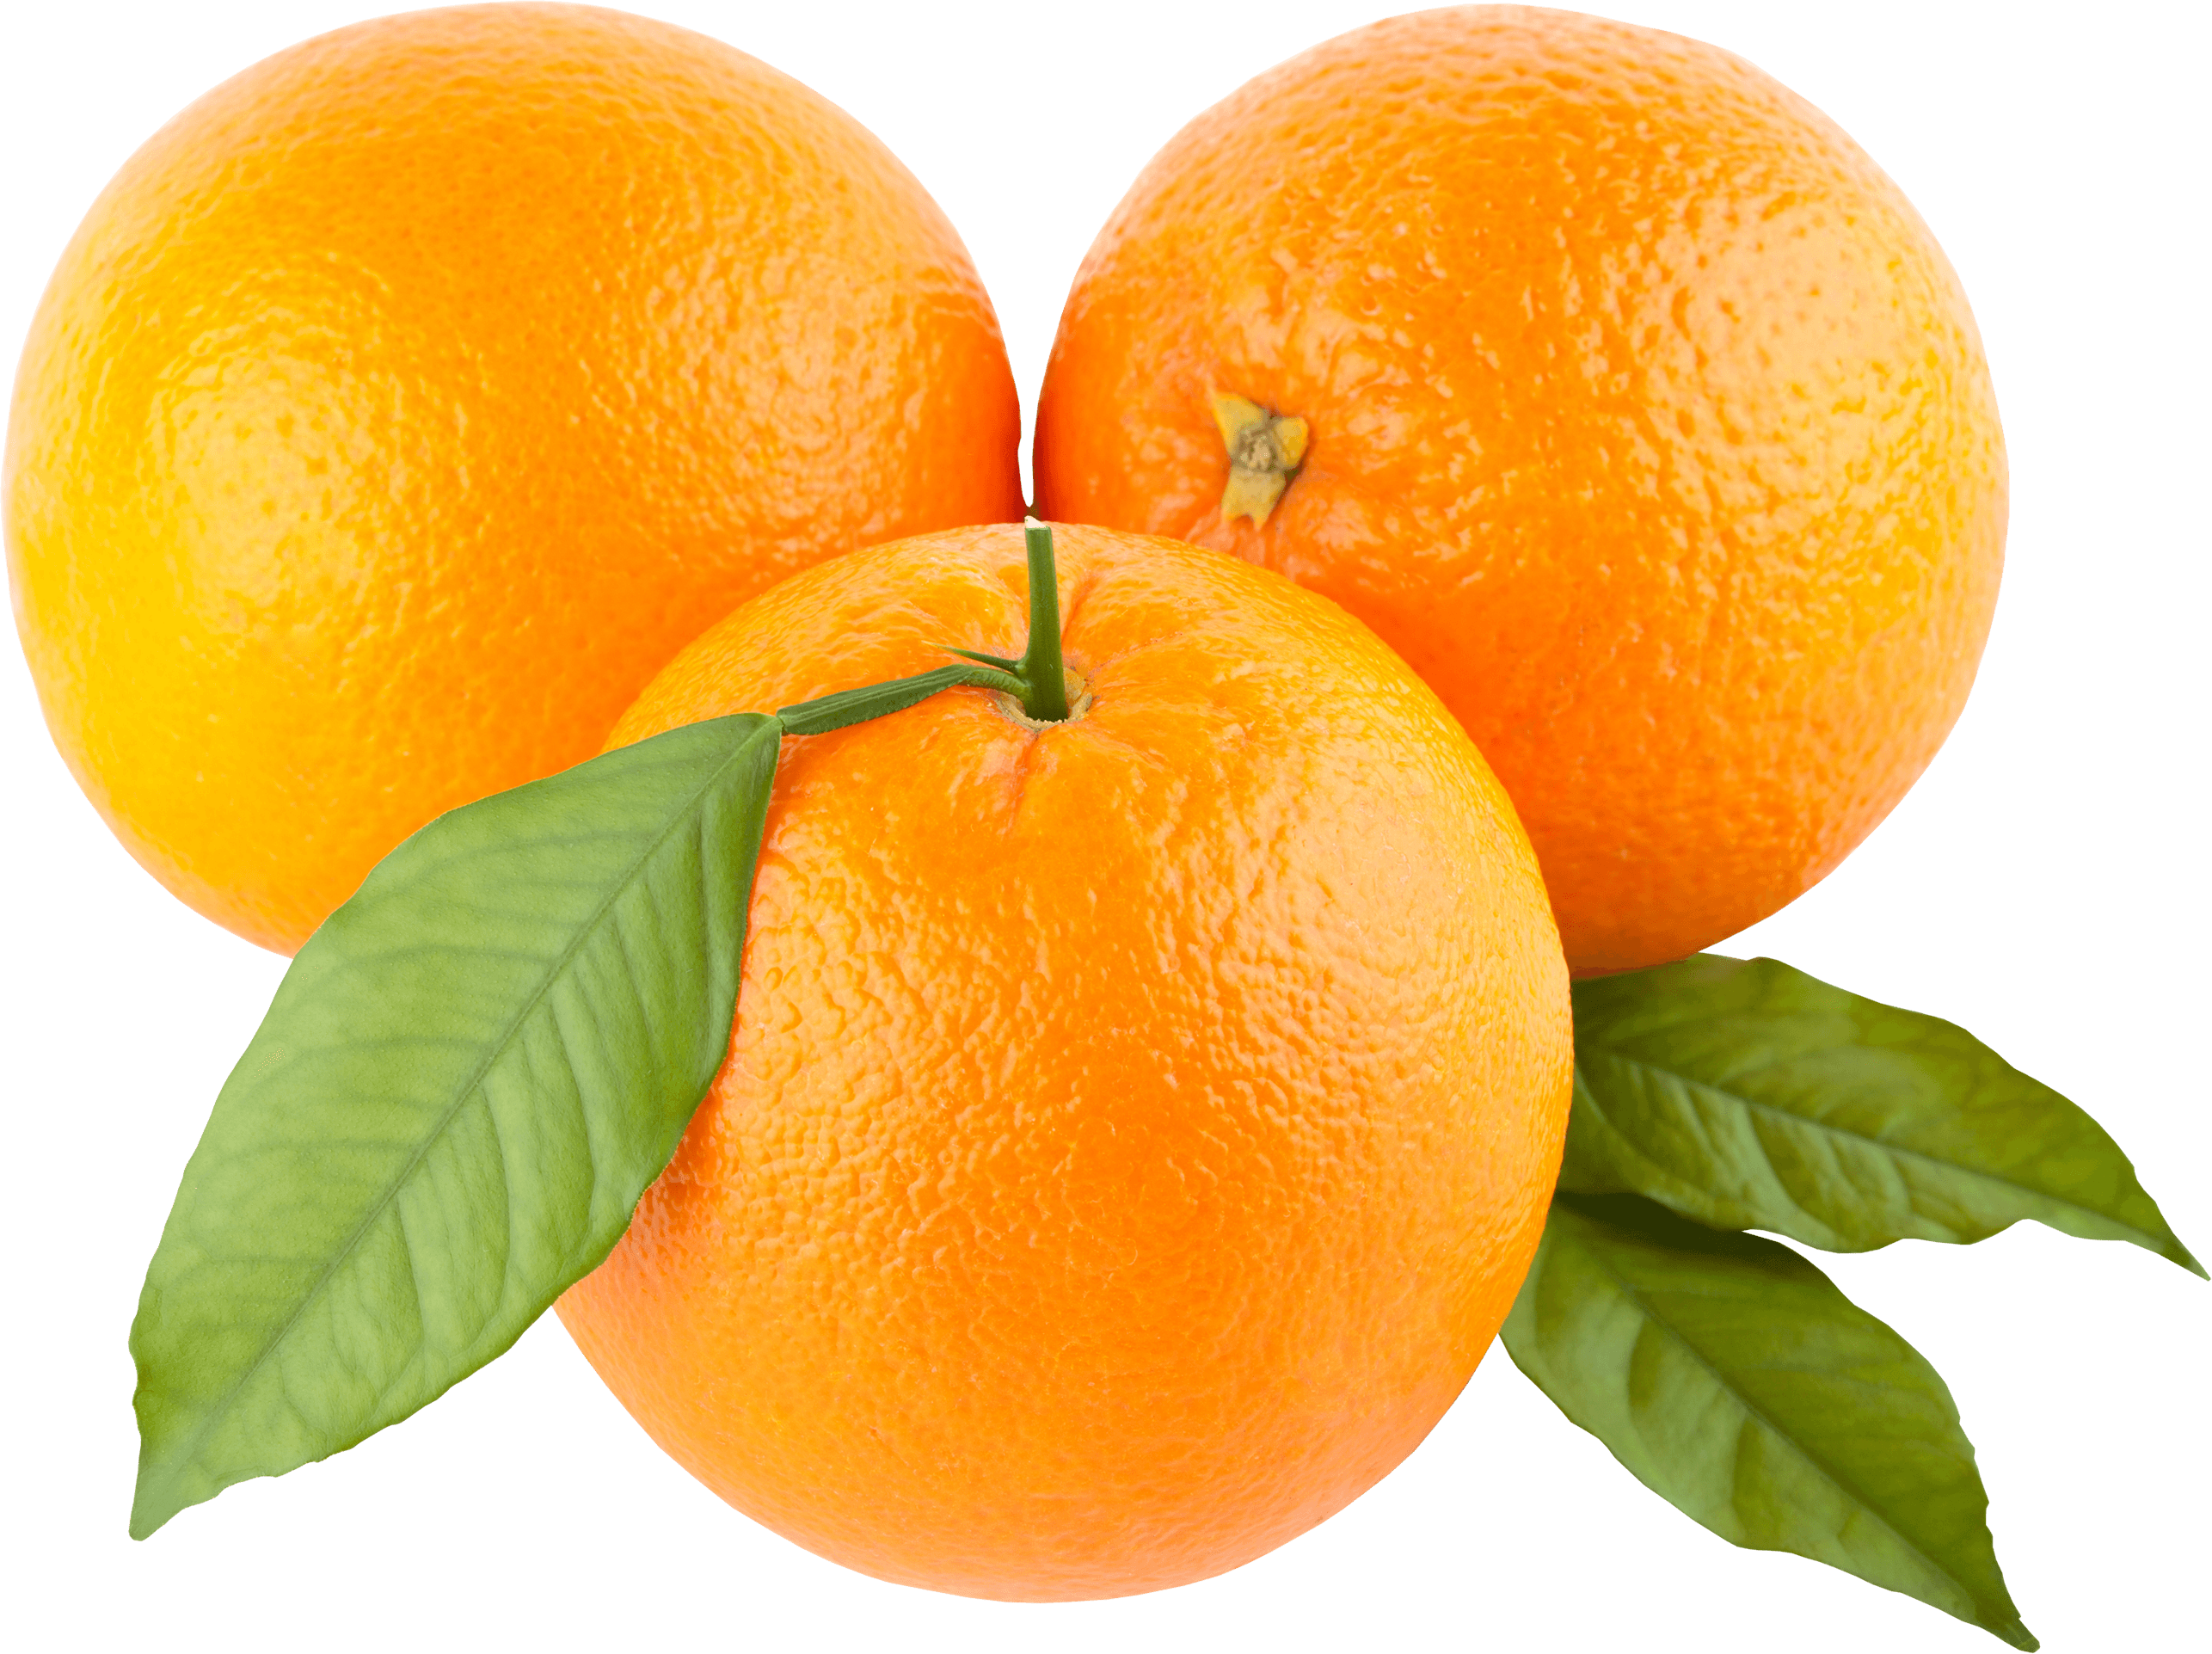 Download Orange Png Image Download Hq Png Image Freepngimg The orange is the fruit of the citrus species citrus sinensis in the family rutaceae. download orange png image download hq